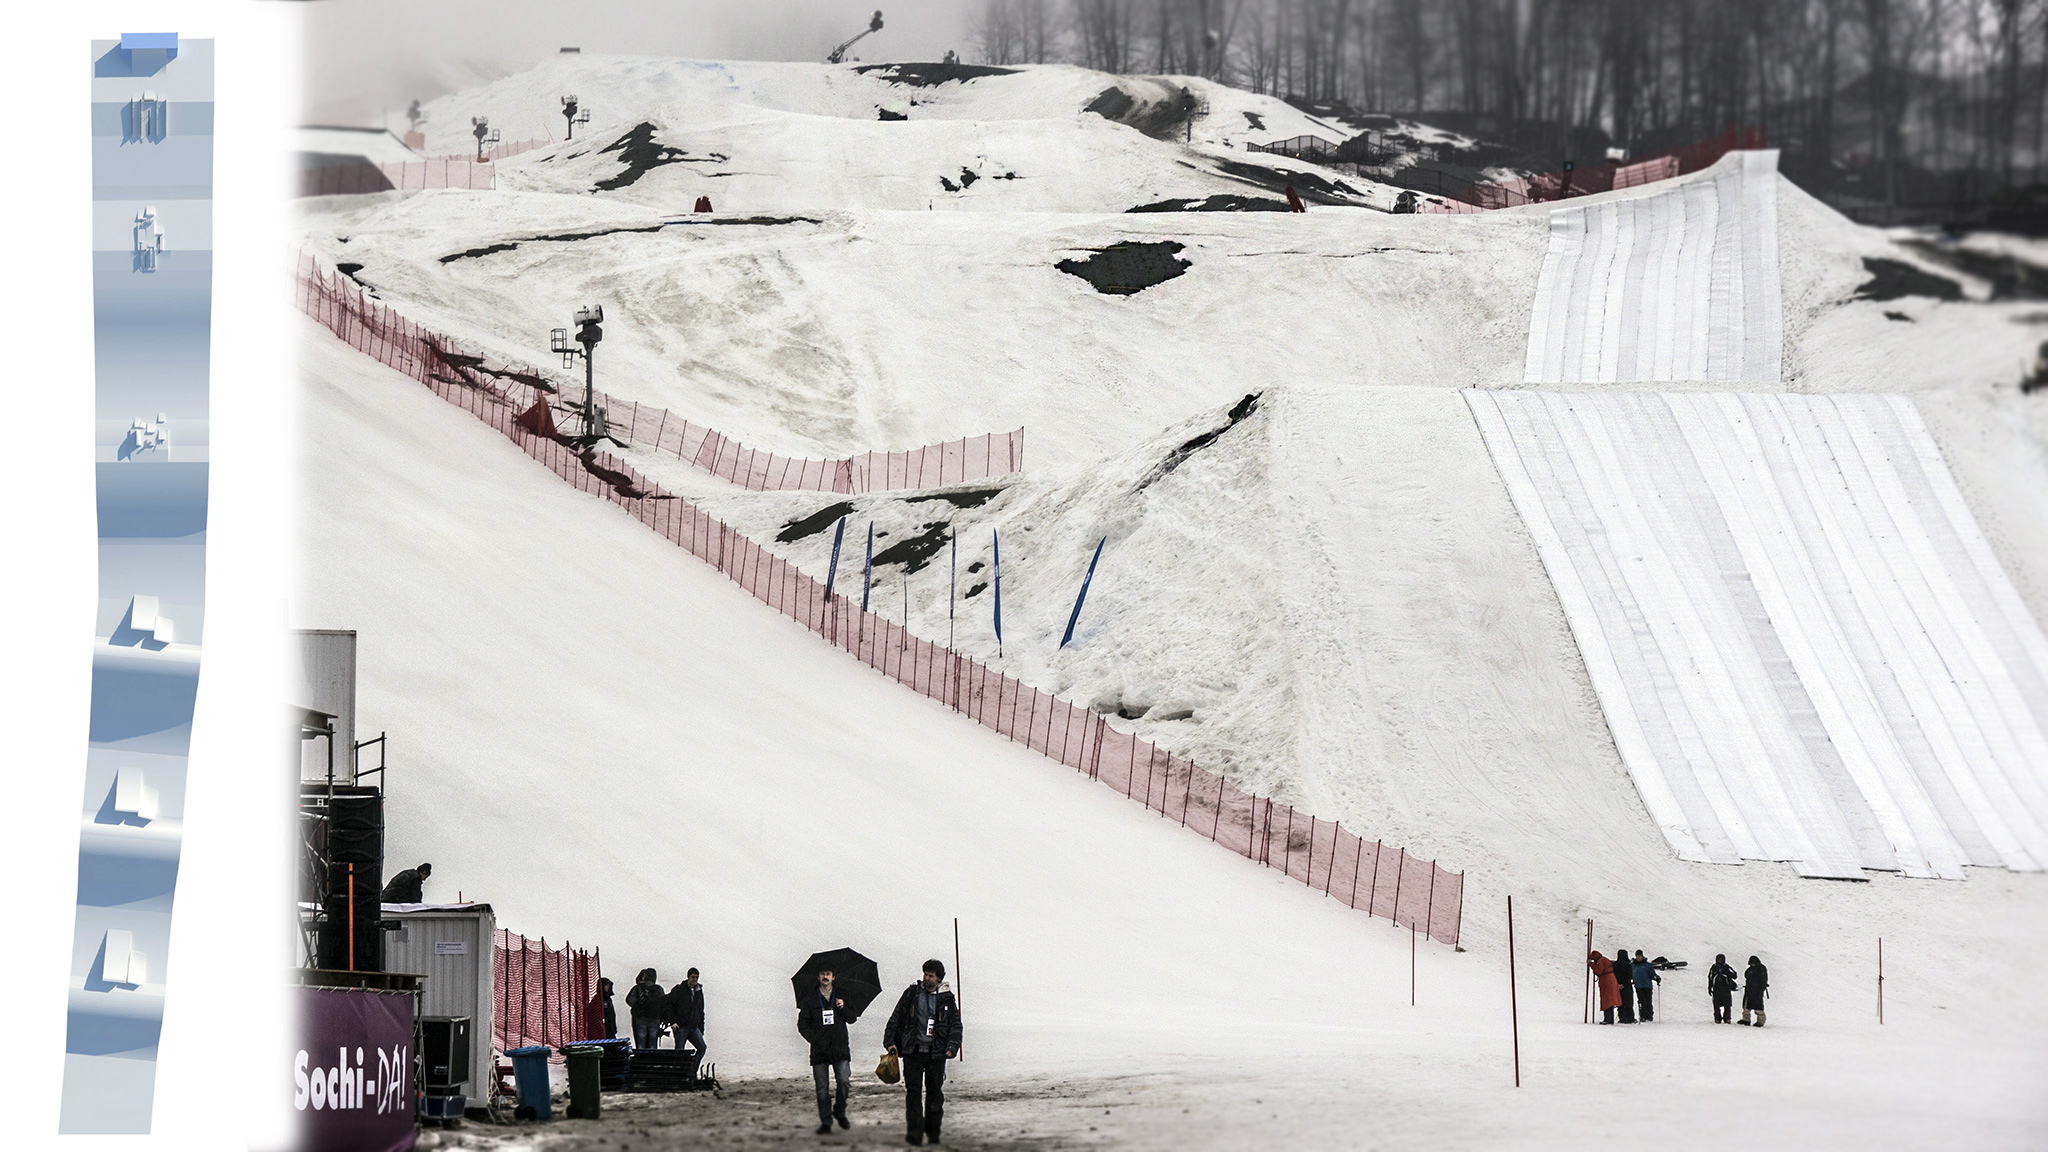 Left: Overhead design view of the future Olympic slopestyle course in Sochi. Right: Portrait of the actual course, circa February 2013.